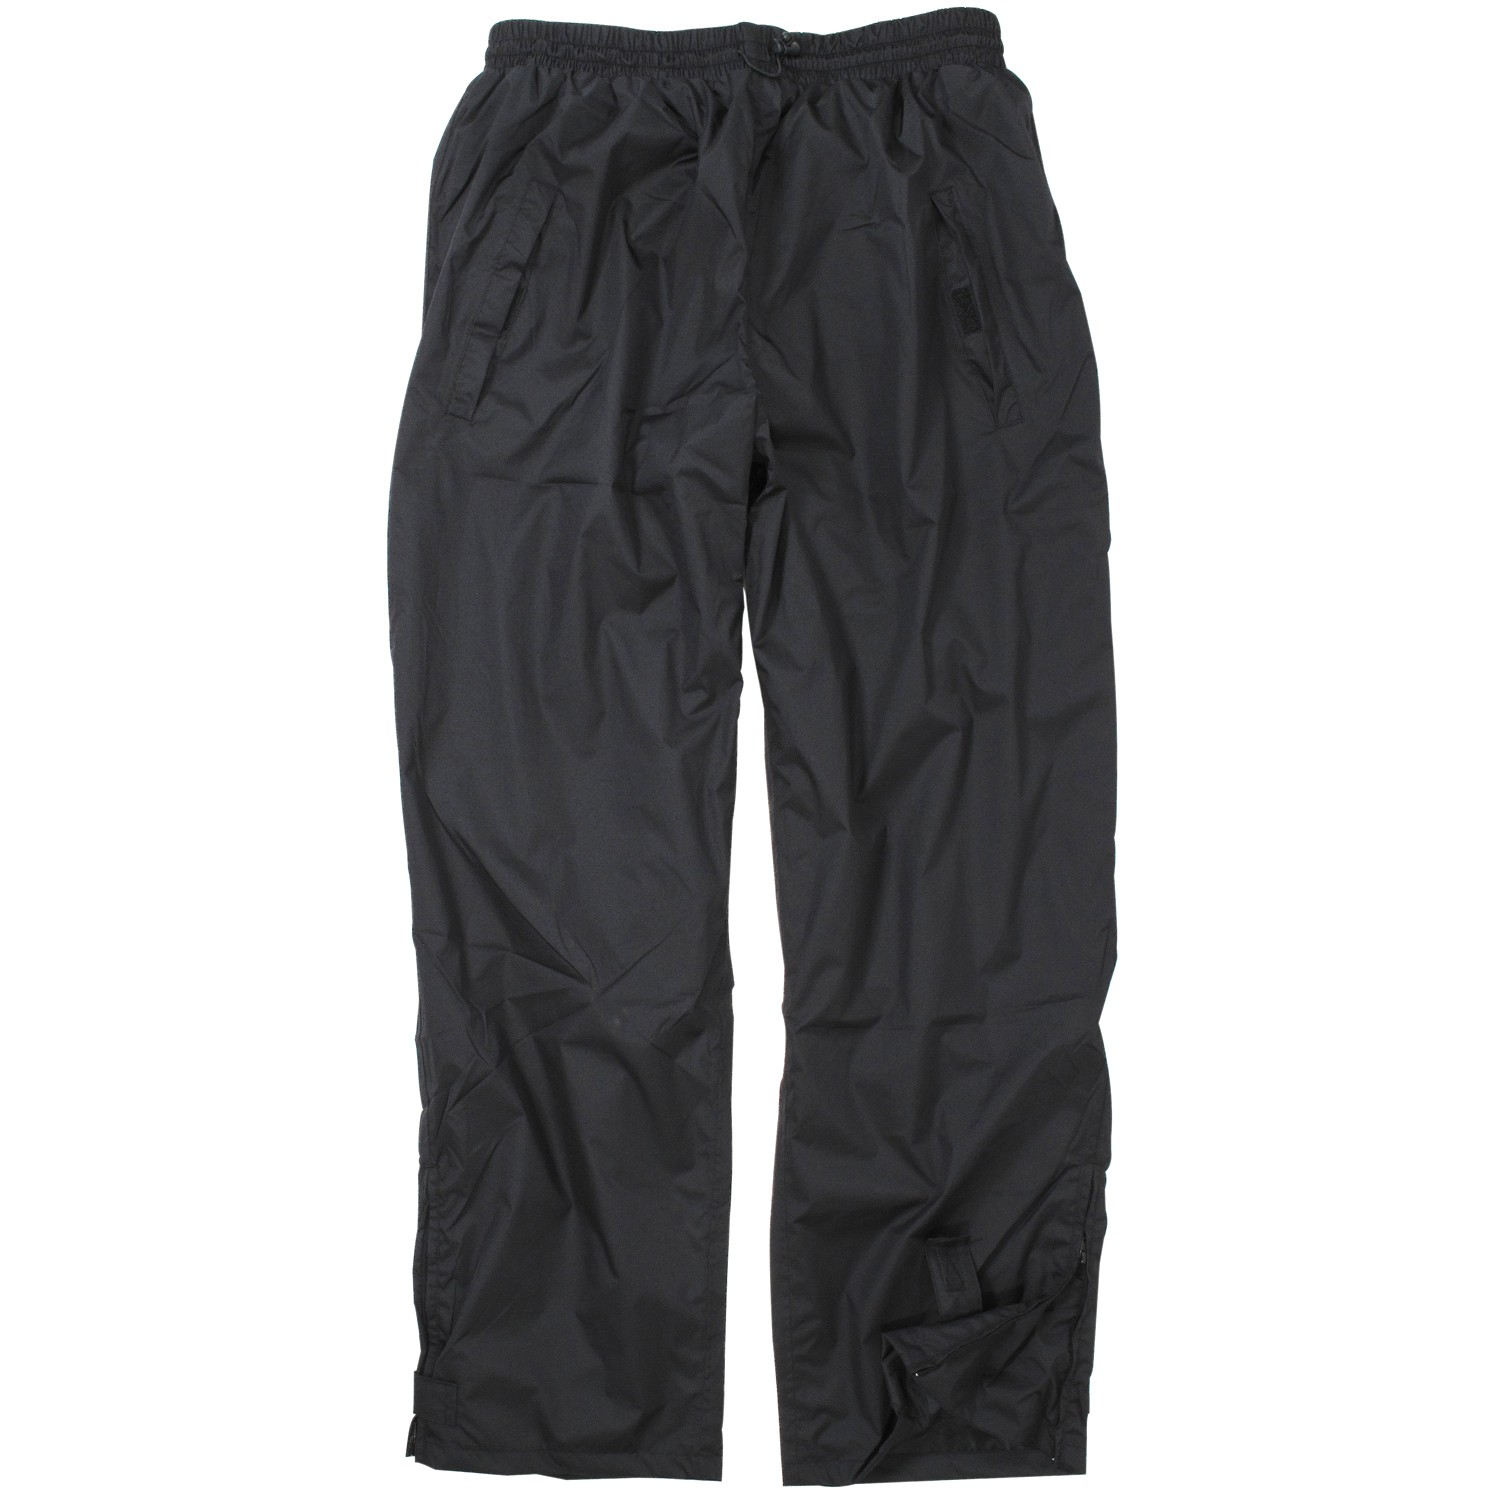 Detail Image to Black rain pants by Aero/North 56°4 in king sizes up to 8 XL